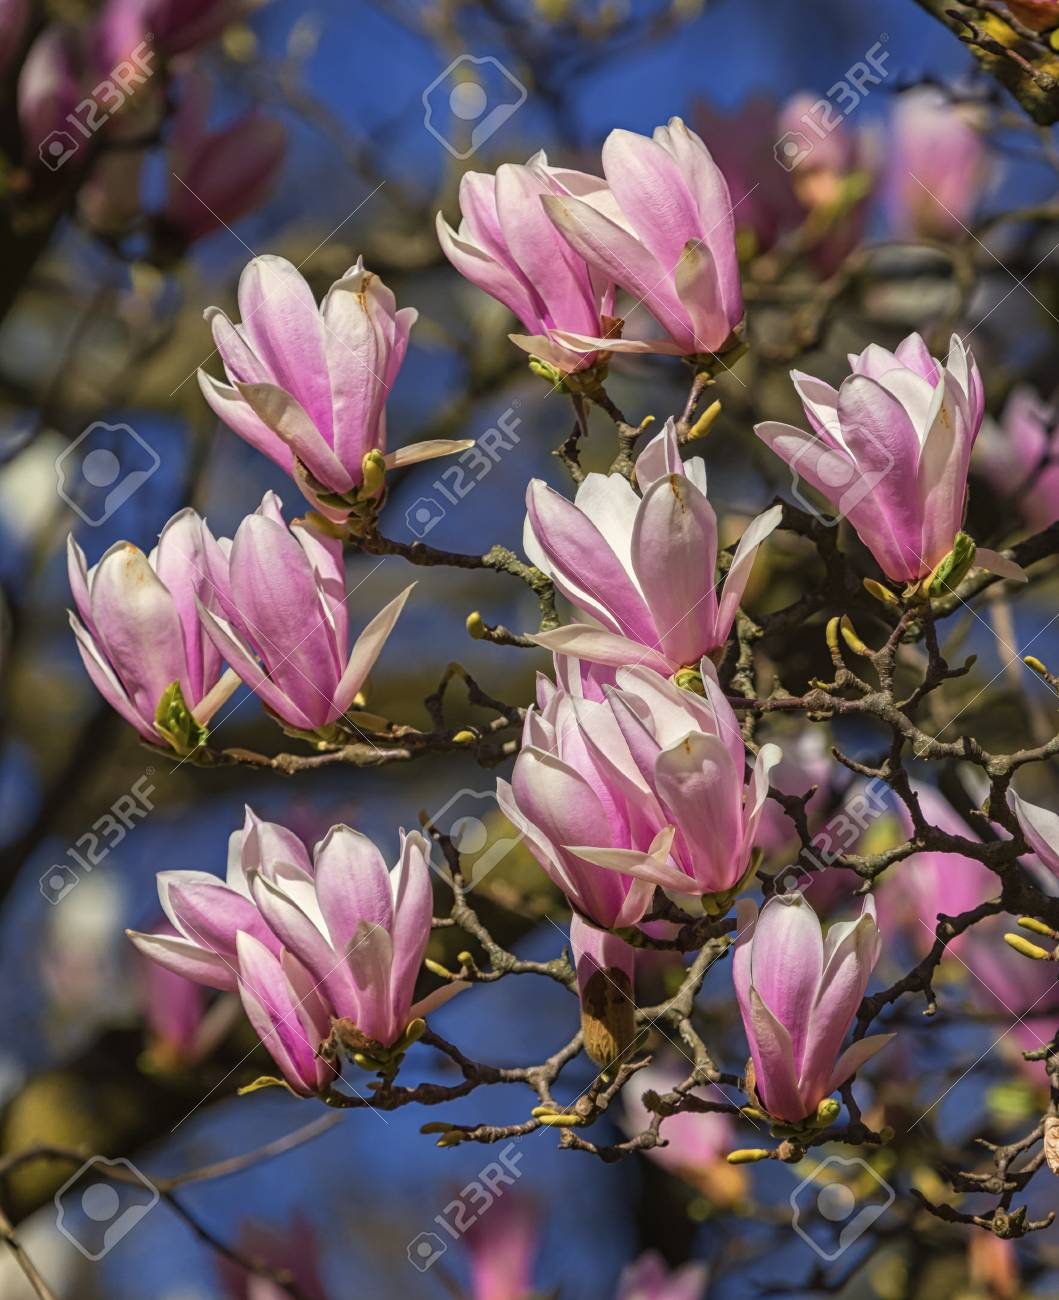 Huangshan Magnolia Cylindrica Flowers Stock Photo Picture And